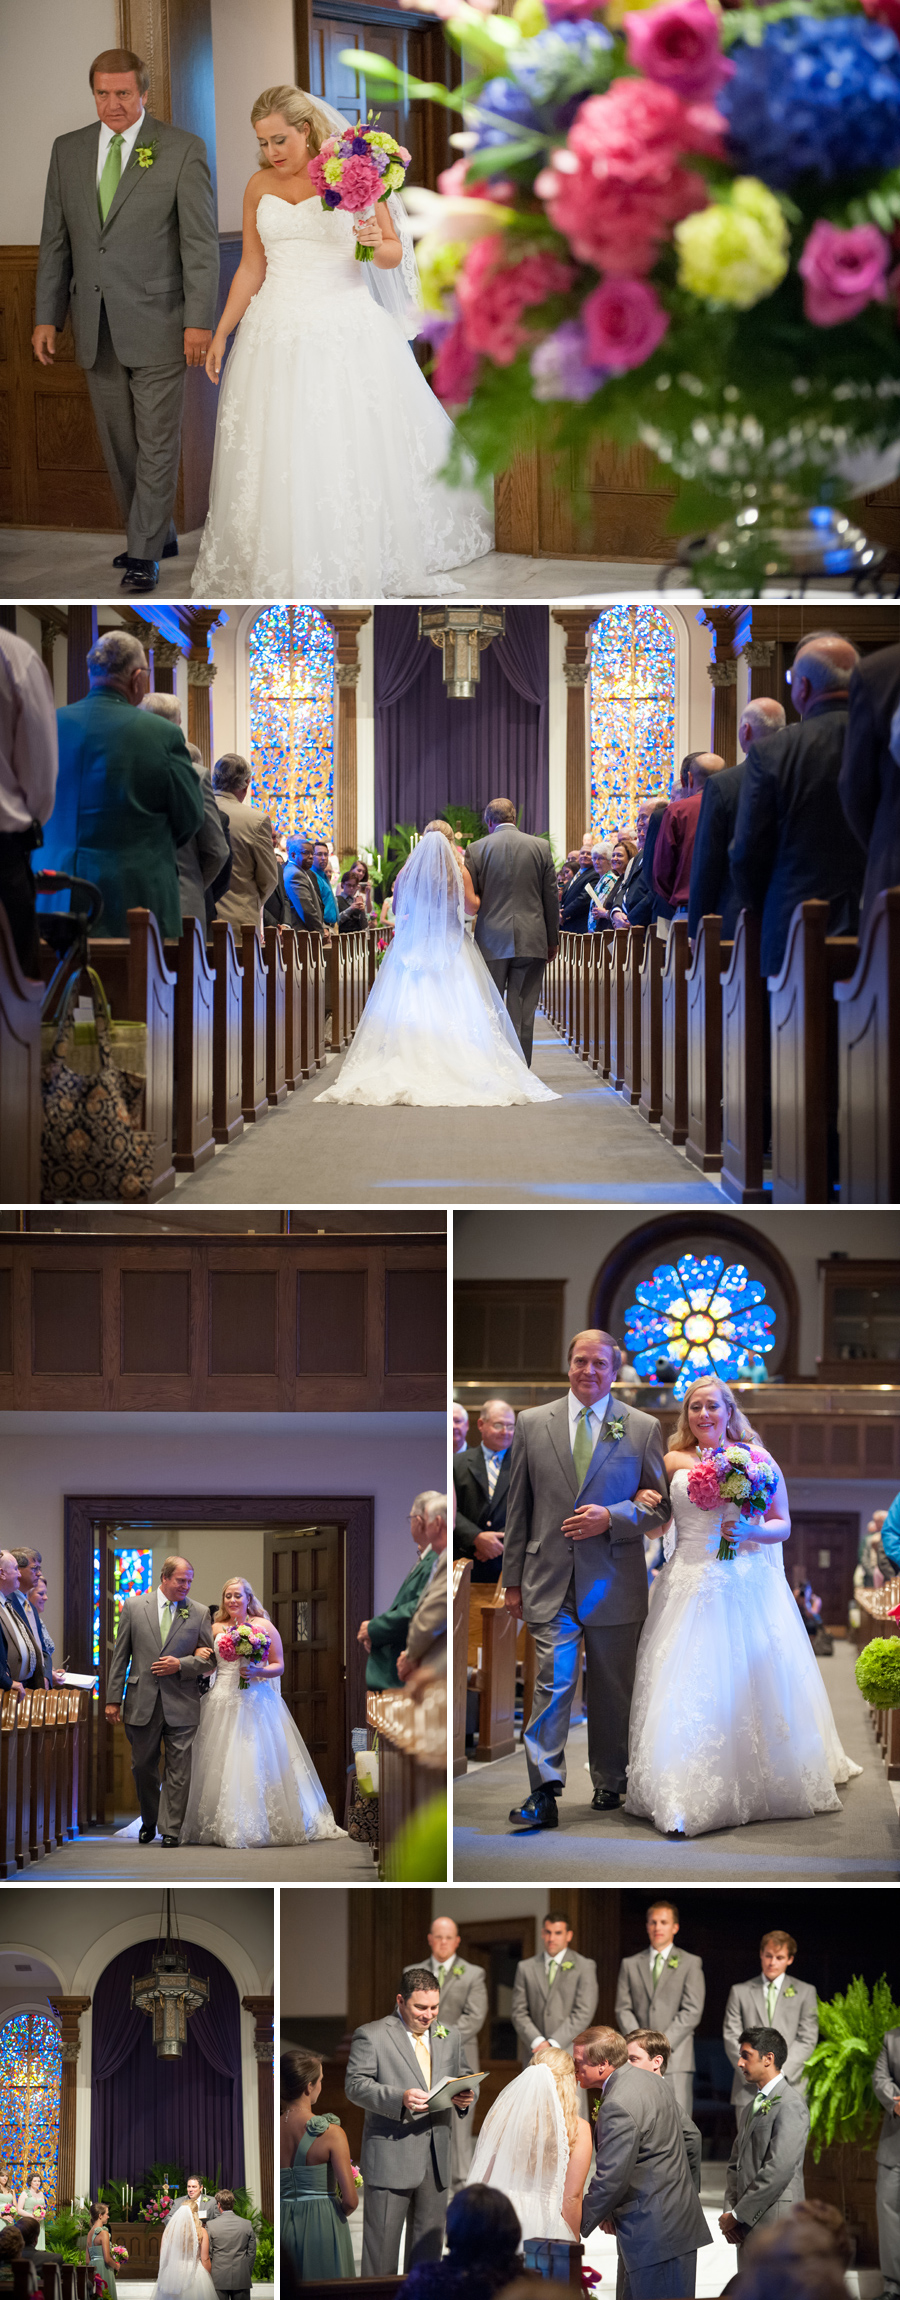 Tricia and Greg wedding at First Baptist Sumter, SC